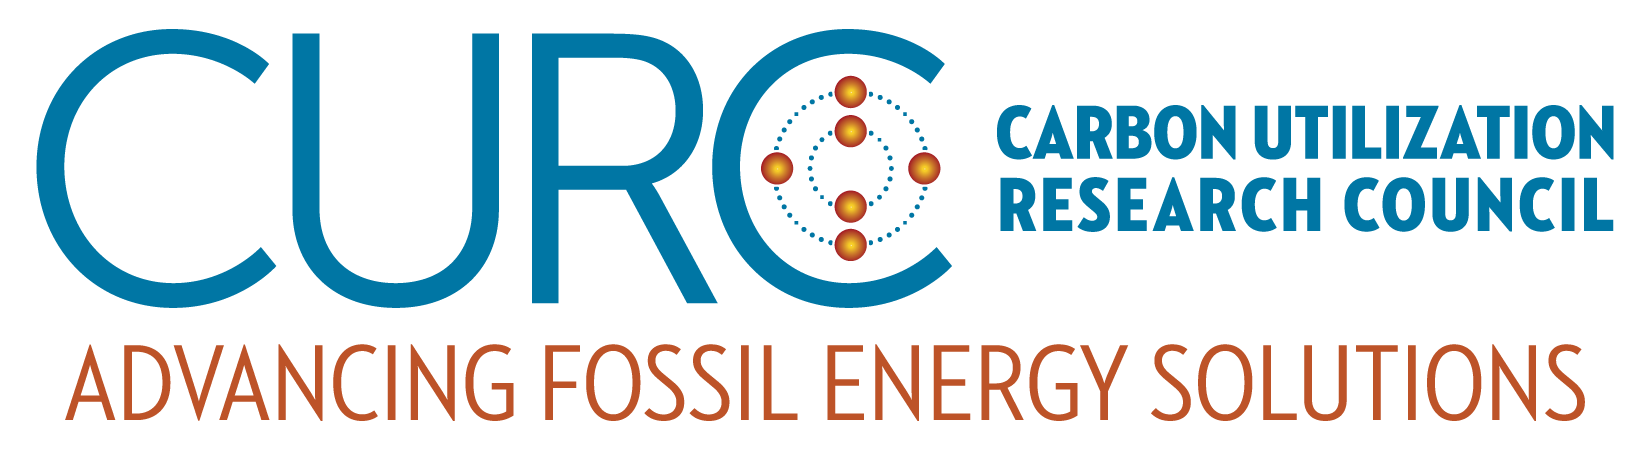 Carbon Utilization Research Council - The Carbon Utilization Research Council (CURC) is an industry coalition focused on technology solutions for the responsible use of our fossil energy resources in a balanced portfolio to support our nation's need for reliable and affordable energy. Created in 1998, CURC serves as an industry voice and advocate by identifying technology pathways that enable the nation to enjoy the benefits of abundant and low cost fossil fuels in a manner compatible with societal energy needs and goals.